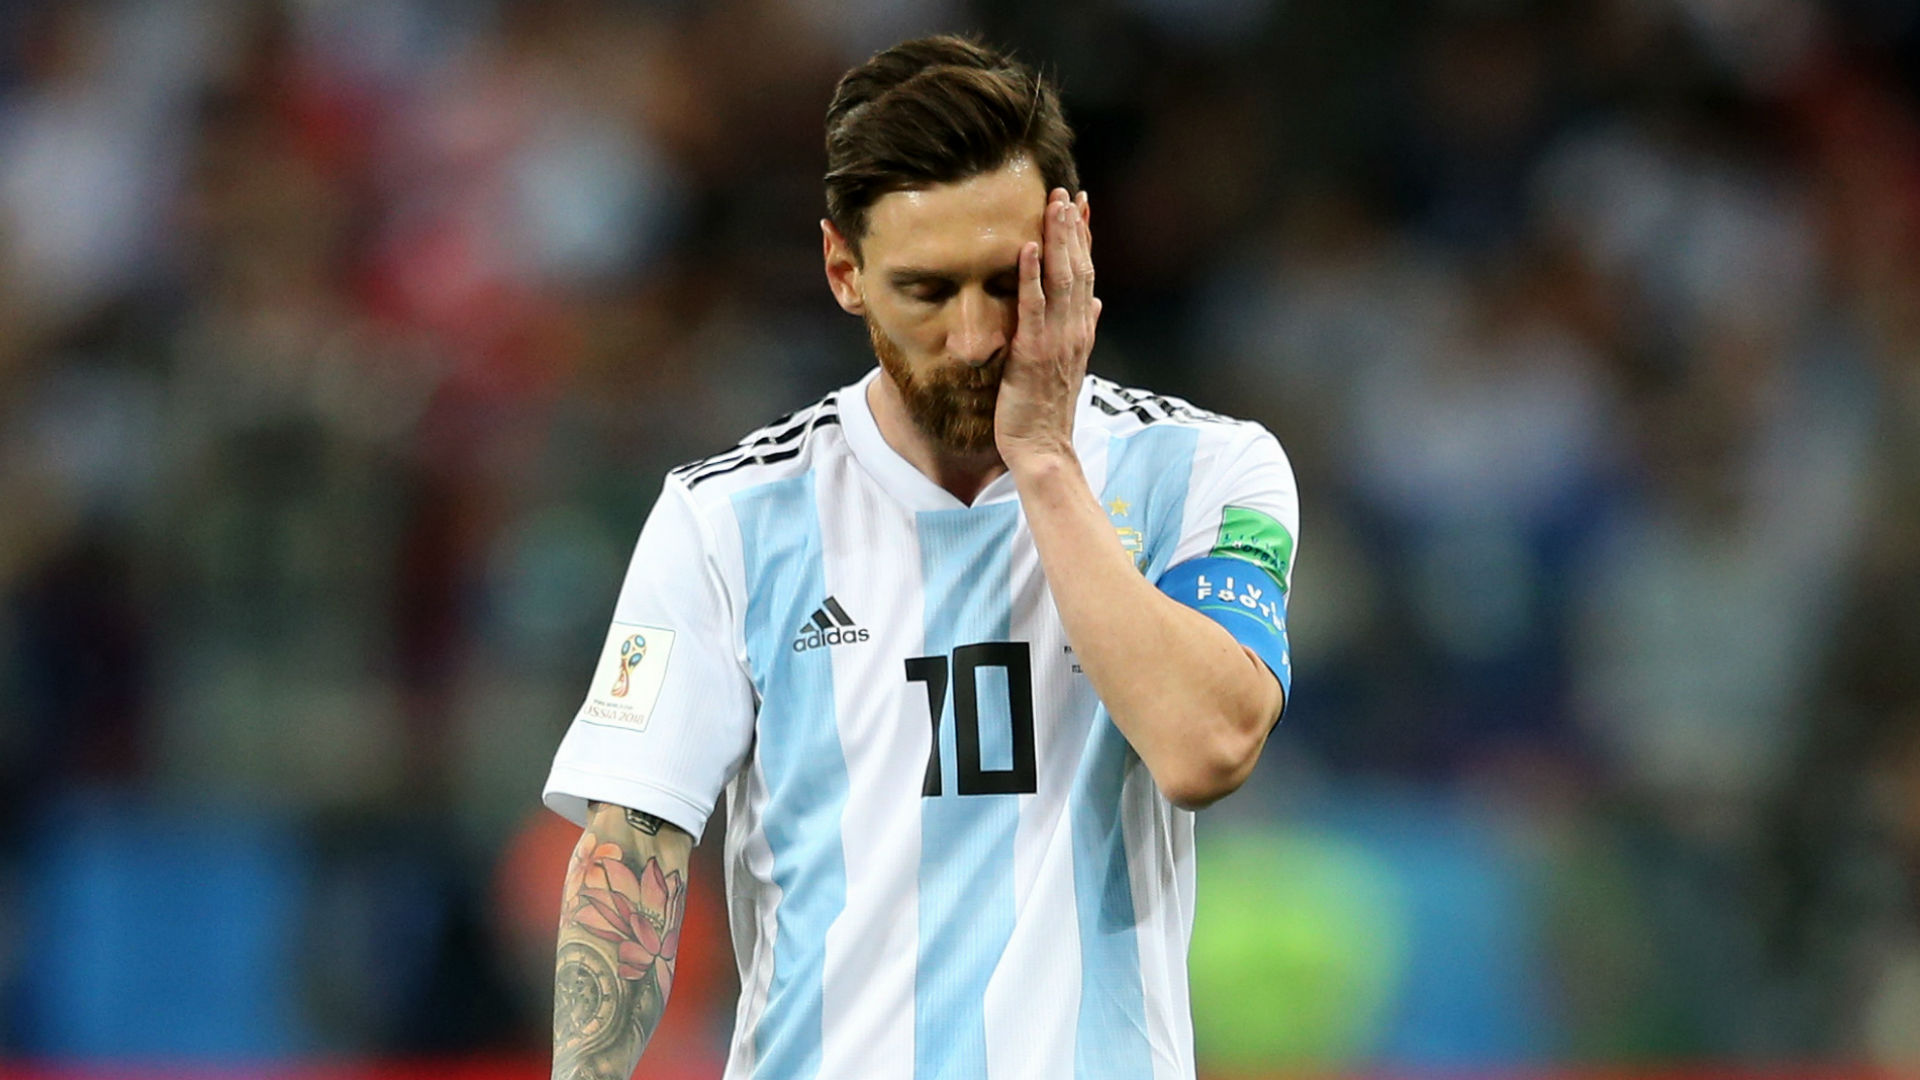 Watch Lionel Messi Announces Shock Retirement After Loss To Chile video